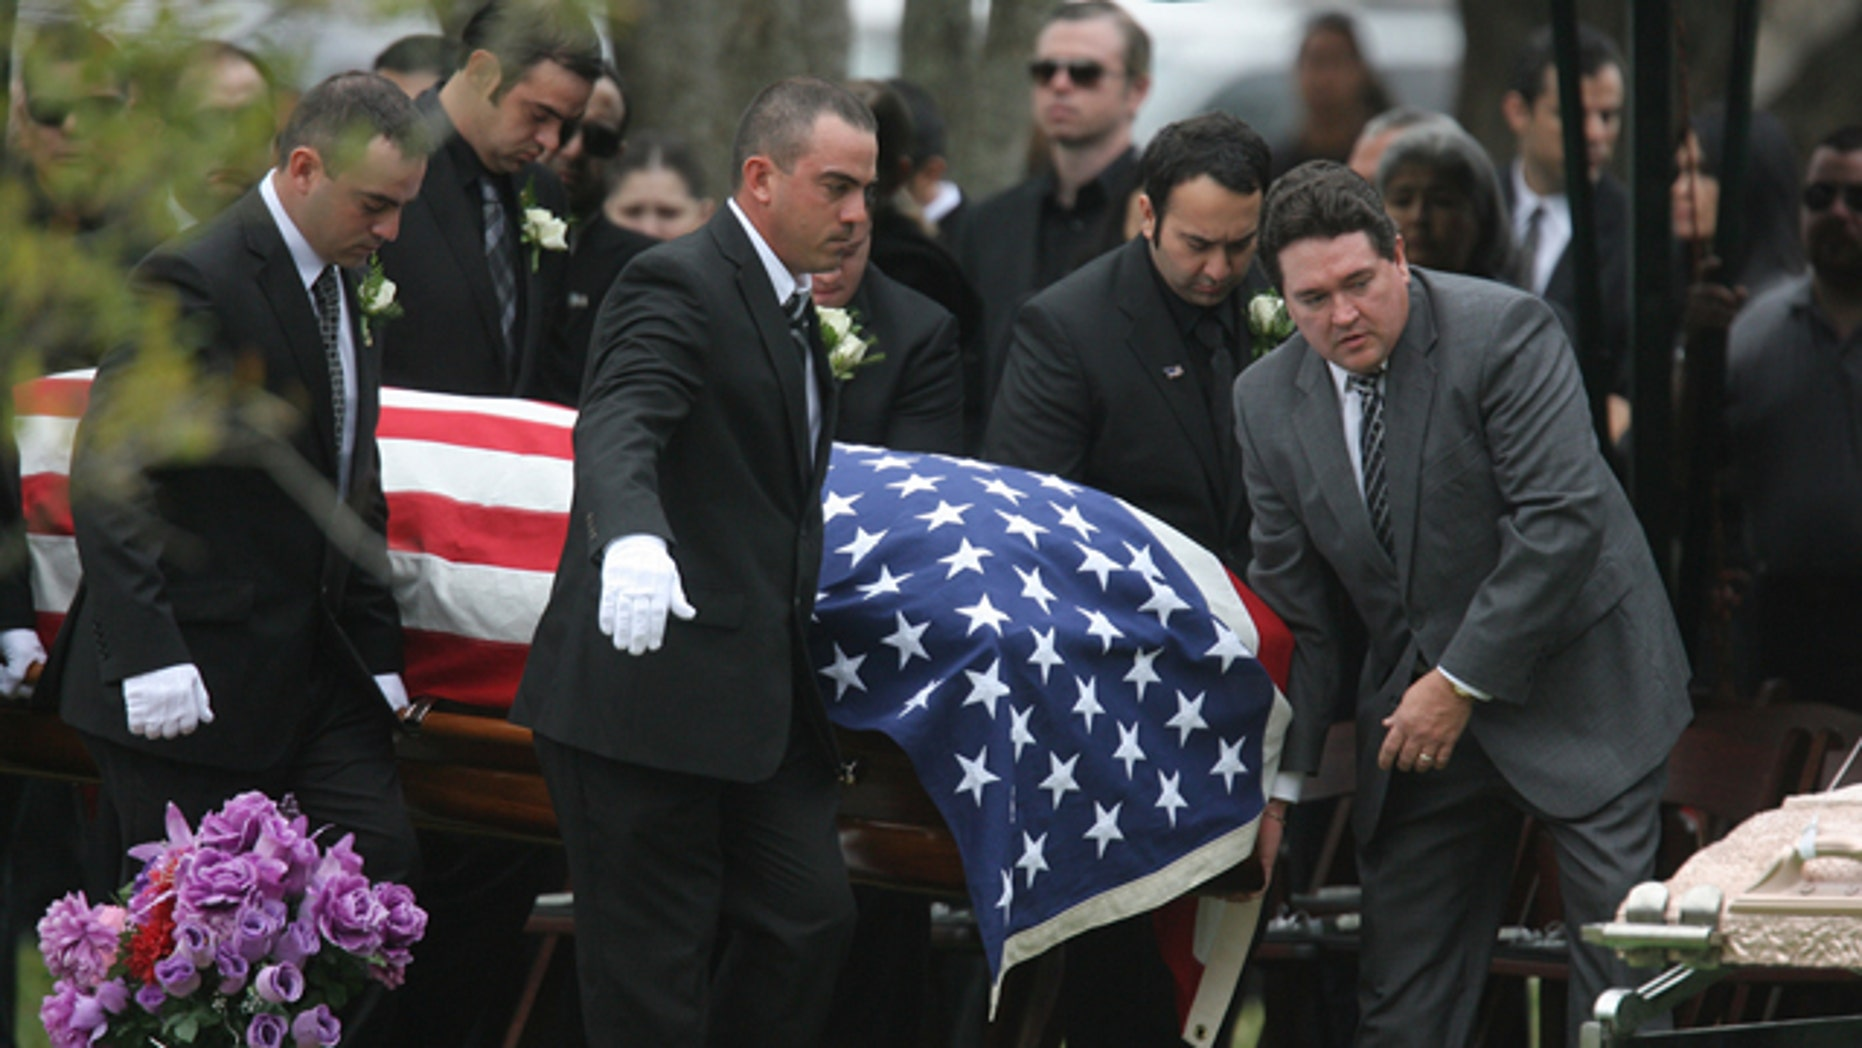 Feb. 22, 2011: Pallbearers carry the casket of ICE agent Jaime Jorge Zapata to the Rose Lawn Garden Memorial cemetery. The Immigration Customs Enforcement officer was shot and killed in Mexico on Feb. 15, 2011 as he travelled with another agent.